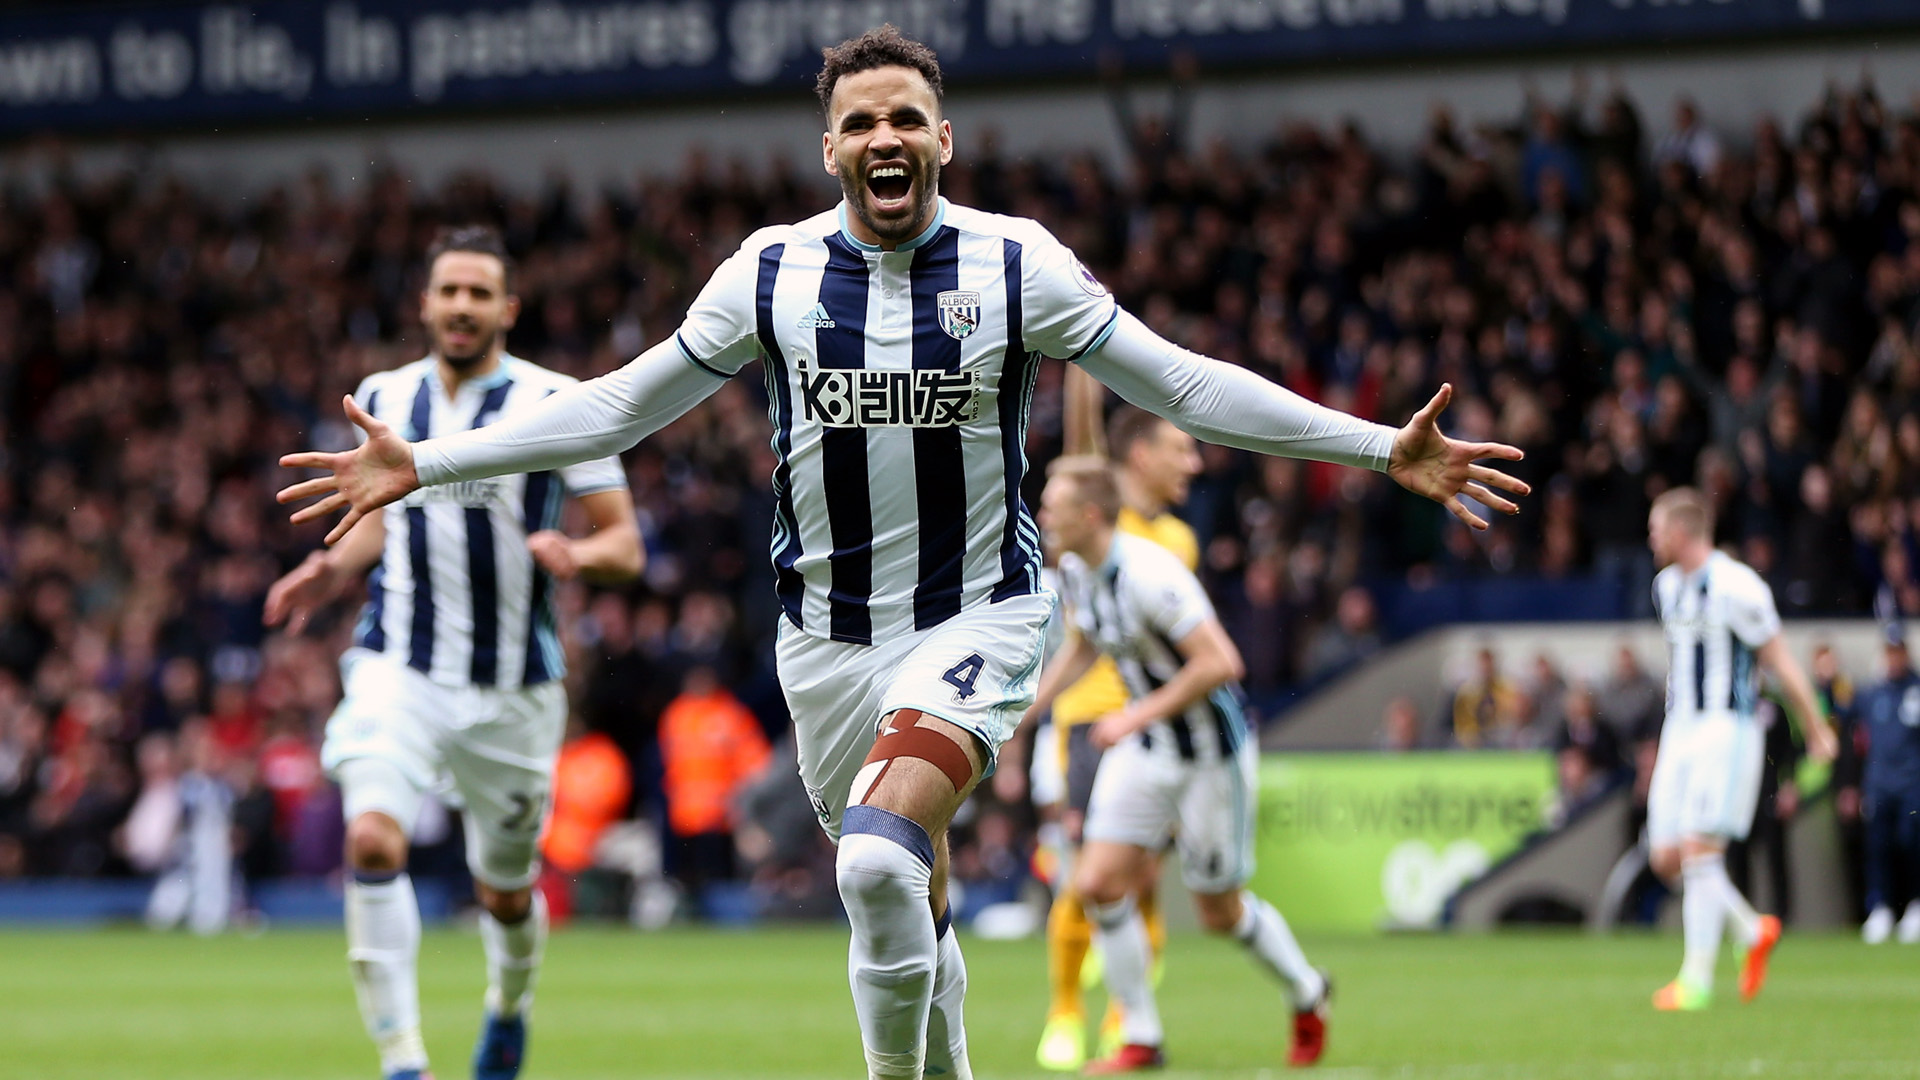 Hal Robson Kanu, do West Brom (Photo by Alex Morton/Getty Images)